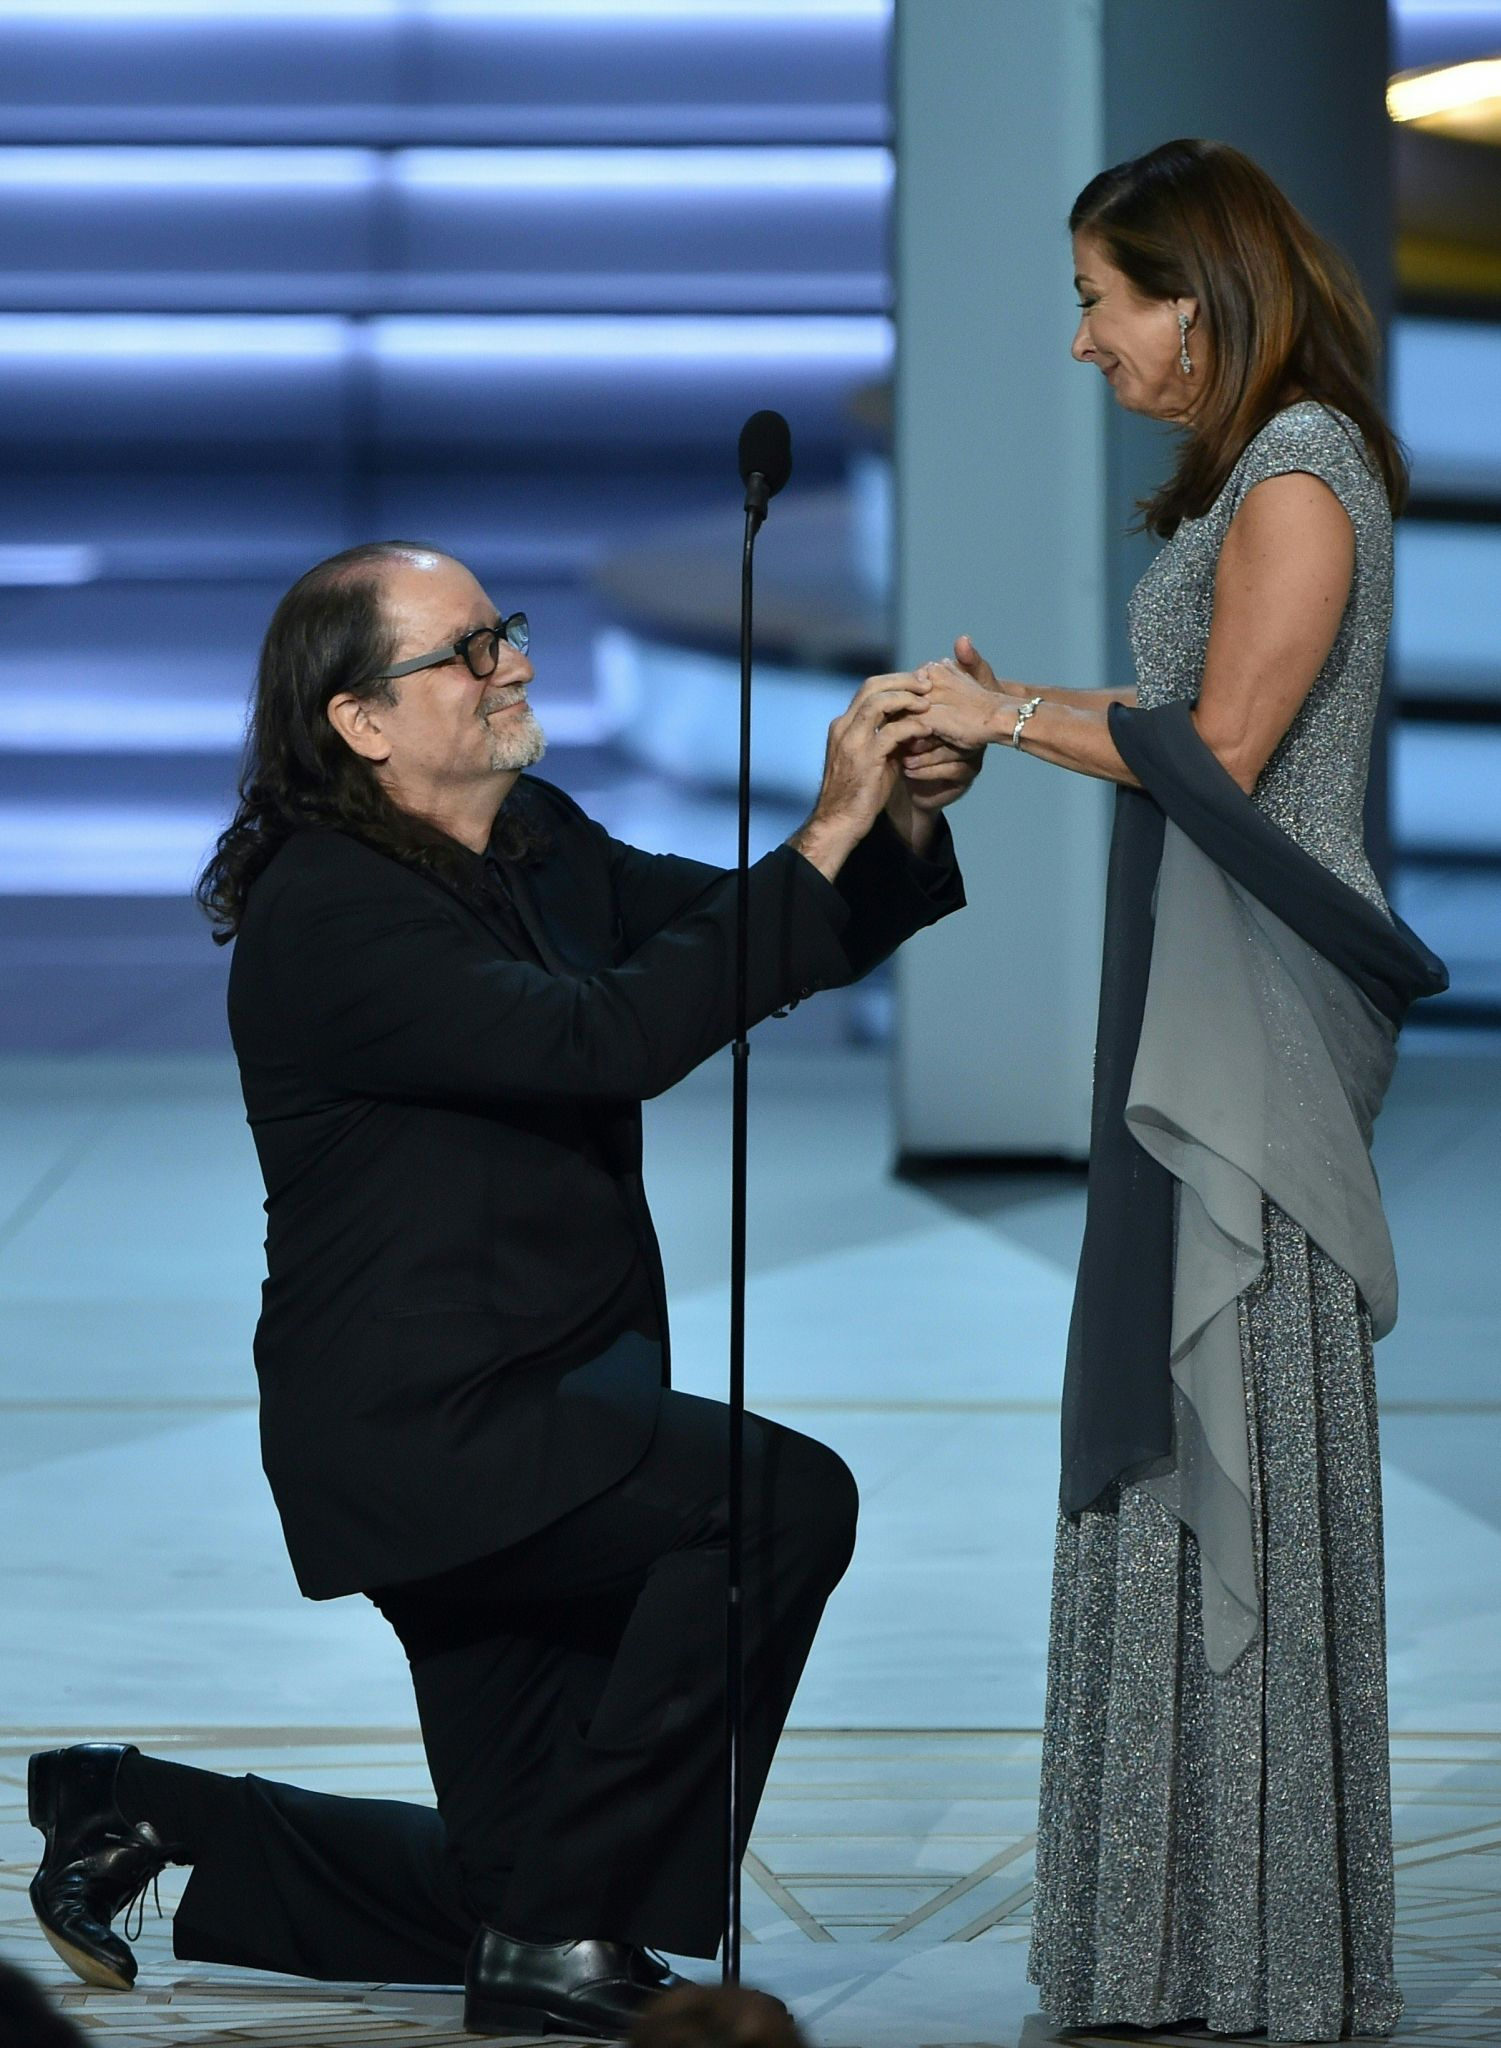 Glenn Weiss proposes to girlfriend during Emmys acceptance speech ...